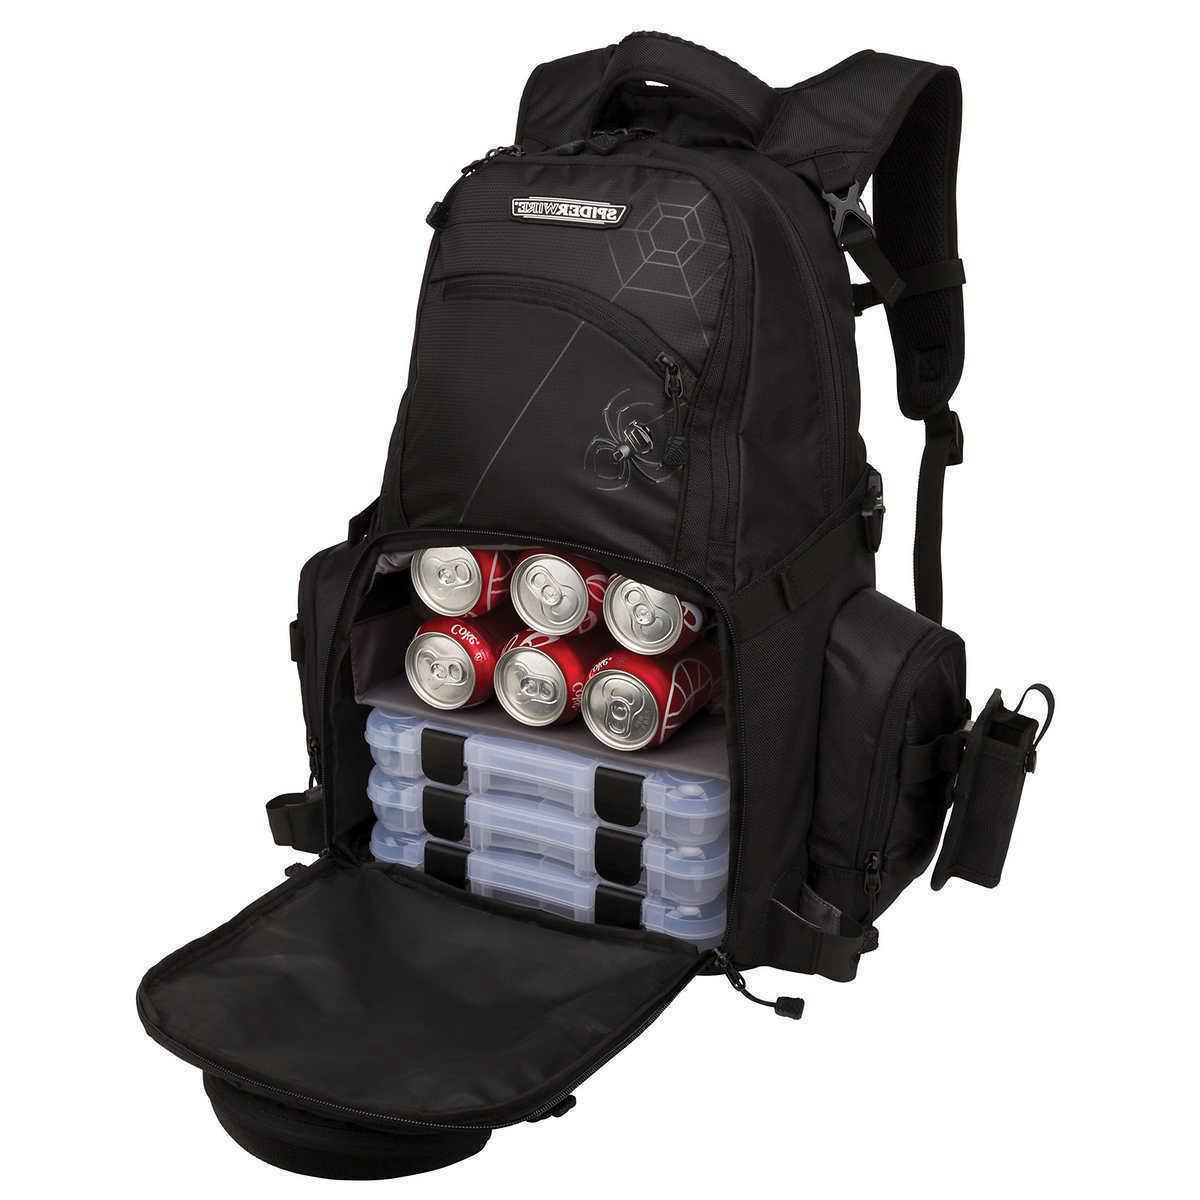 Spiderwire Tackle Backpack Fishing Rod Carry System Adjustab